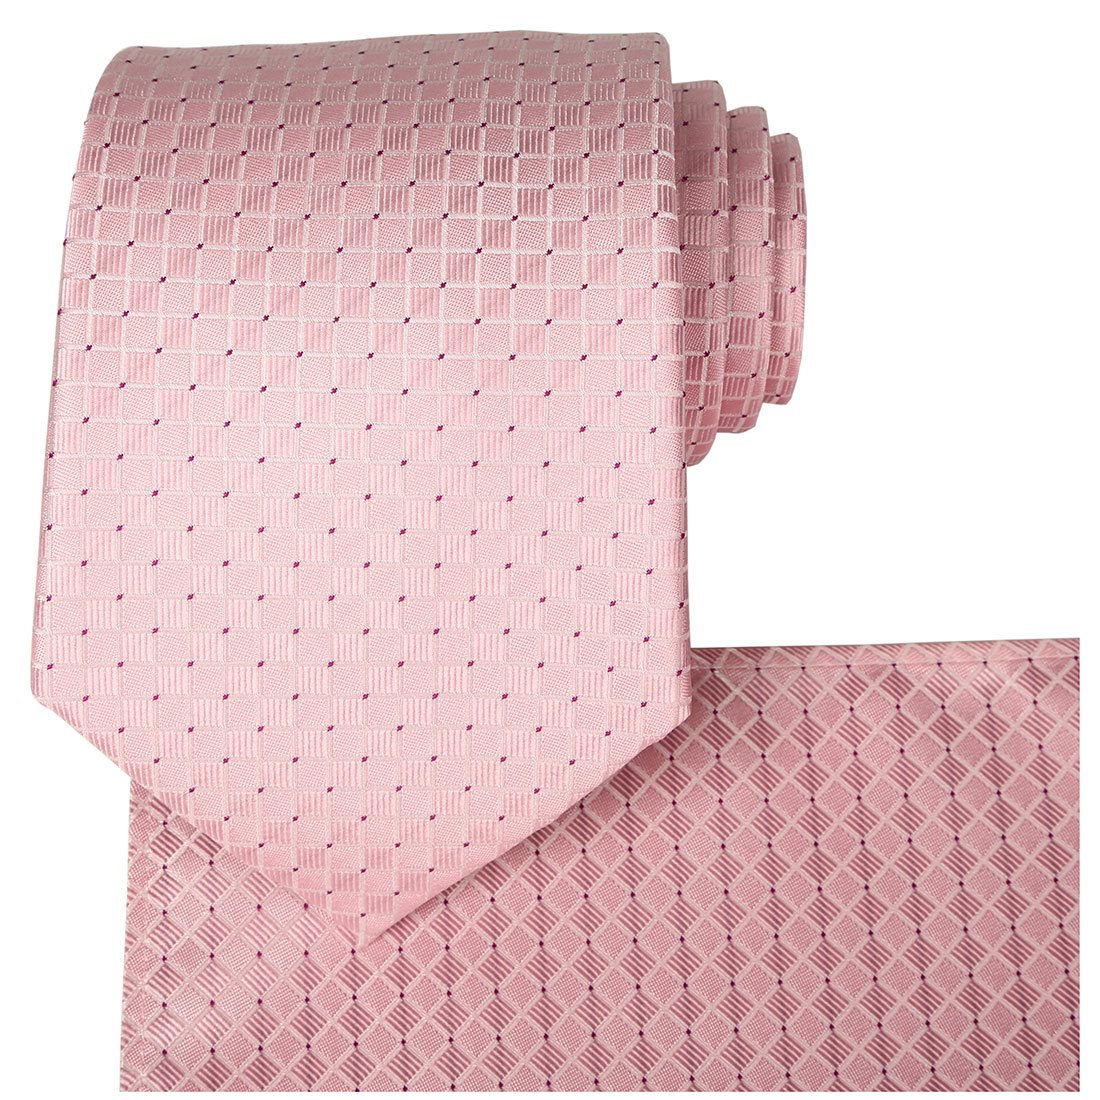 KissTies Rosy Pink Solid Tie Set Wedding Necktie + Pocket Square + Gift Box by KissTies